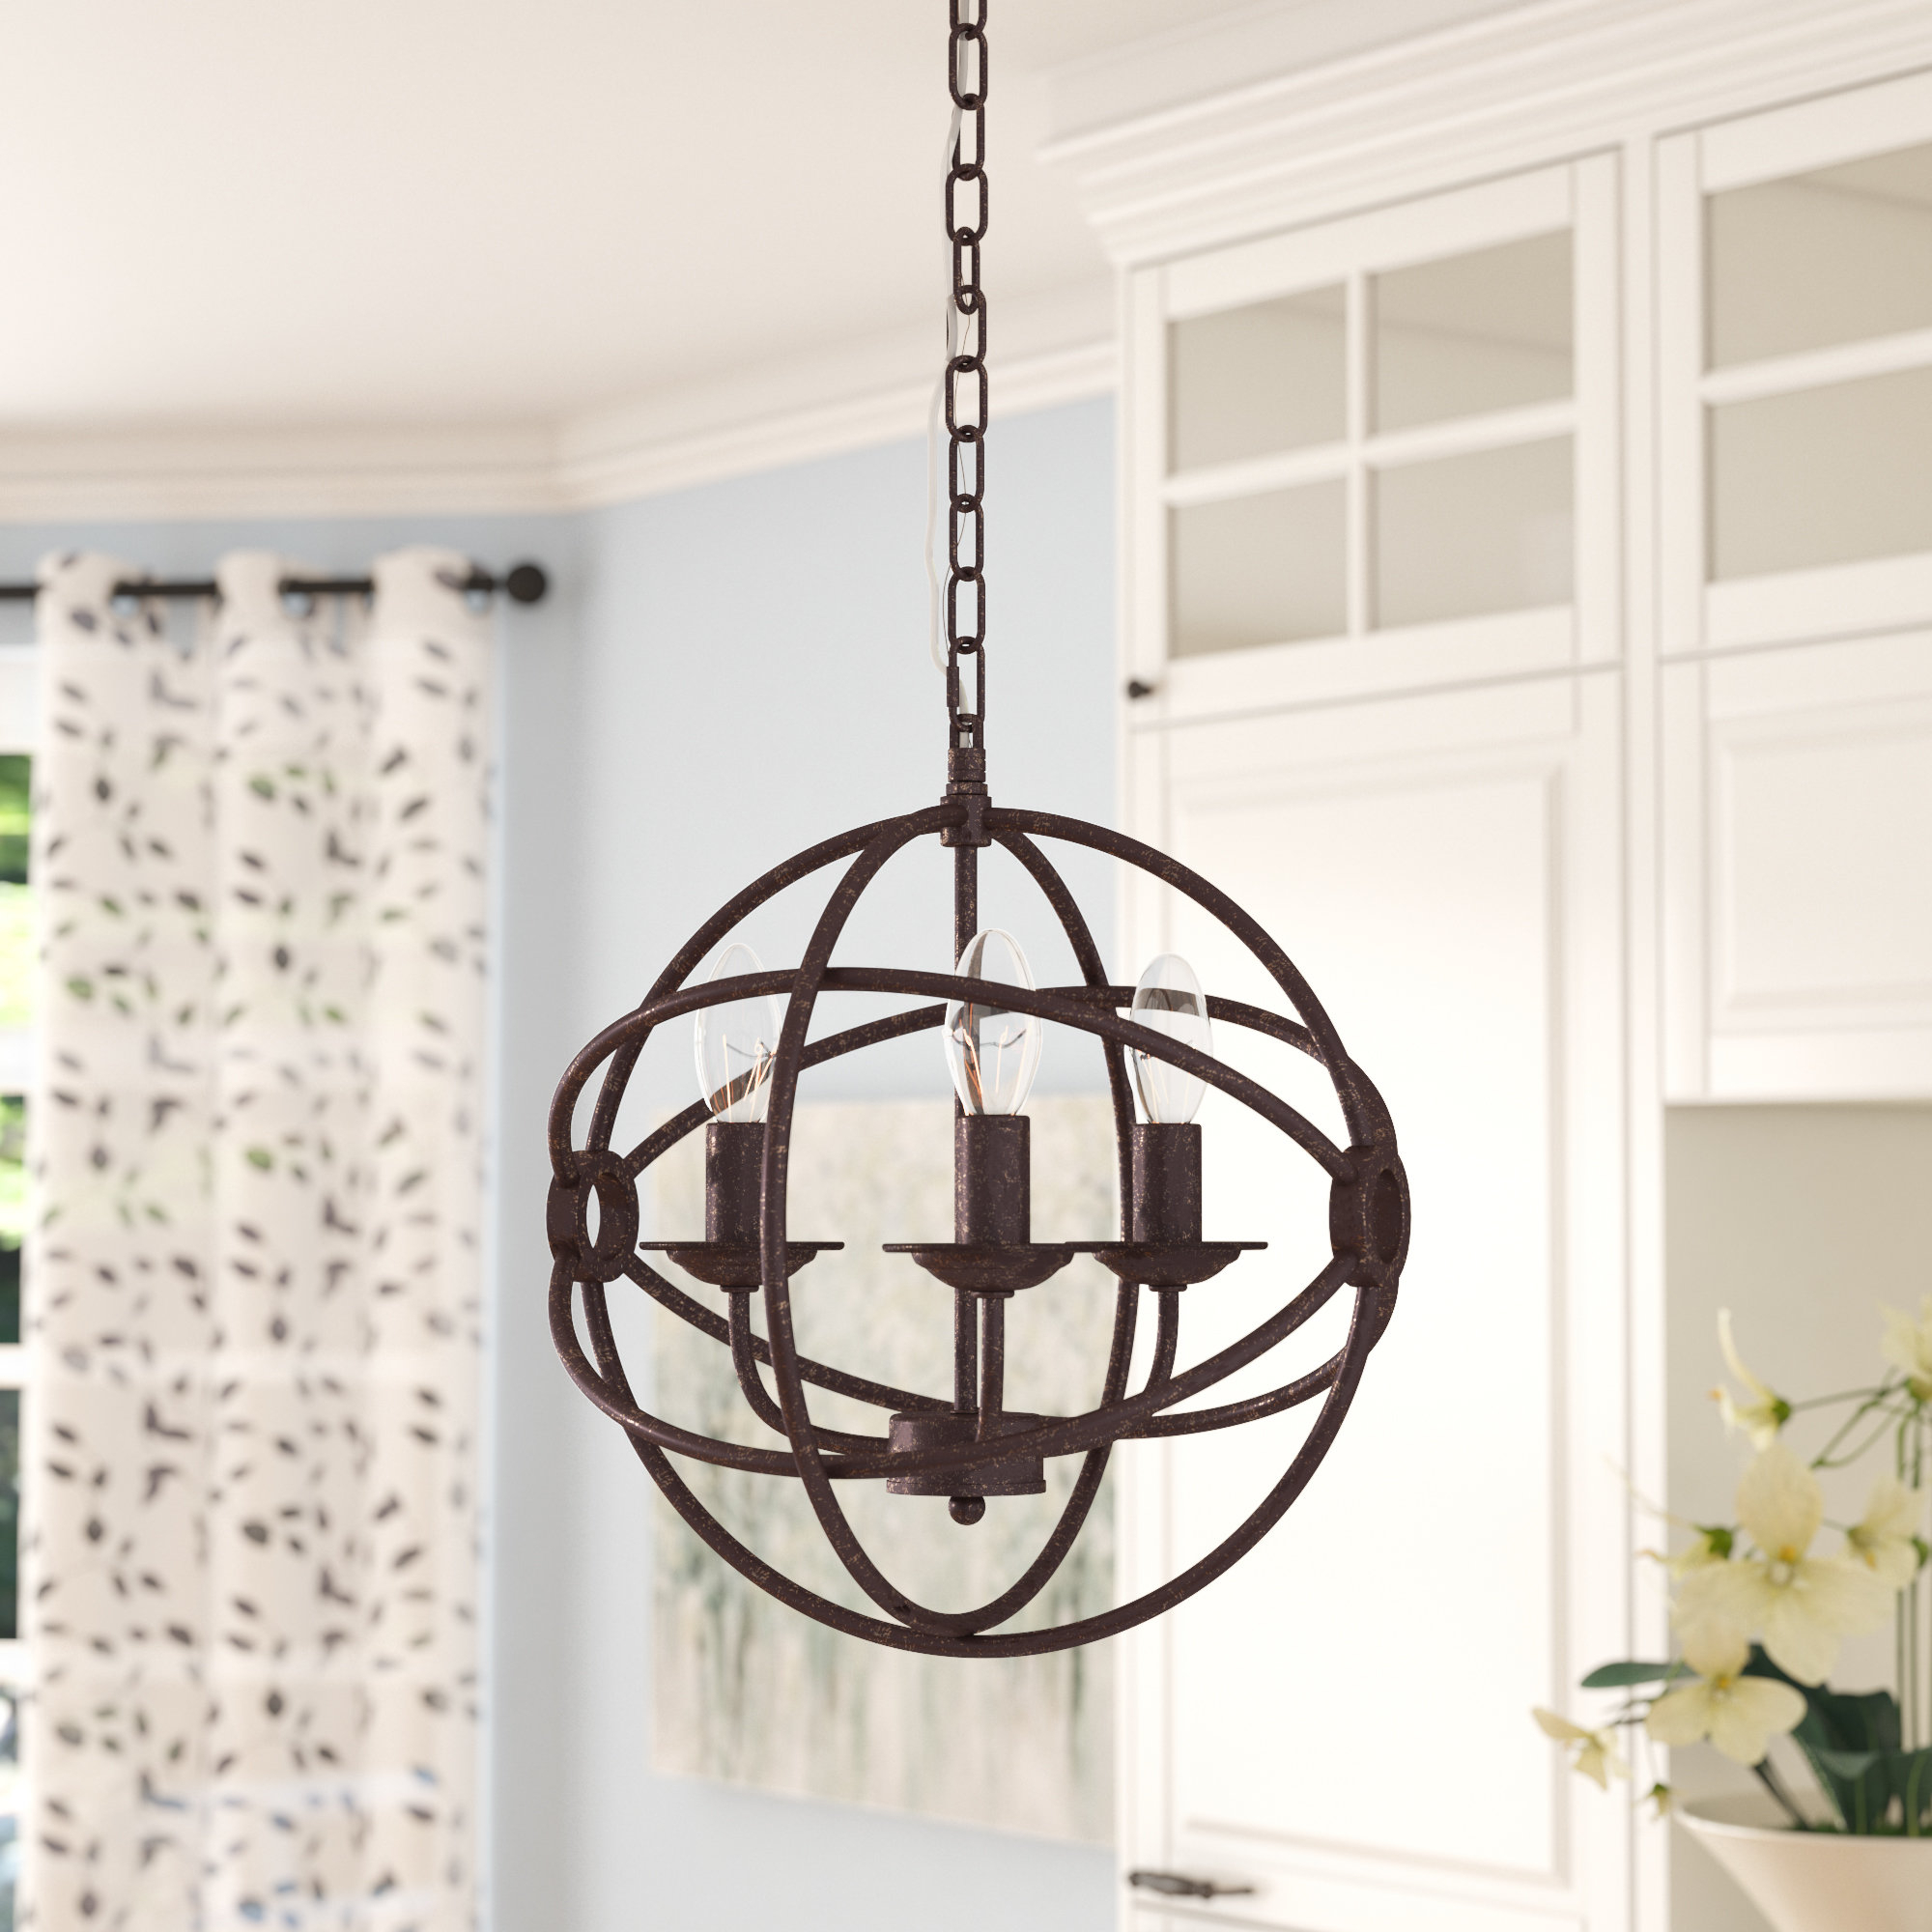 [%Globe Chandeliers Sale – Up To 65% Off Until September 30Th For Most Up To Date Ricciardo 4 Light Globe Chandeliers Ricciardo 4 Light Globe Chandeliers For Best And Newest Globe Chandeliers Sale – Up To 65% Off Until September 30Th Well Liked Ricciardo 4 Light Globe Chandeliers For Globe Chandeliers Sale – Up To 65% Off Until September 30Th Most Up To Date Globe Chandeliers Sale – Up To 65% Off Until September 30Th For Ricciardo 4 Light Globe Chandeliers%] (View 1 of 25)